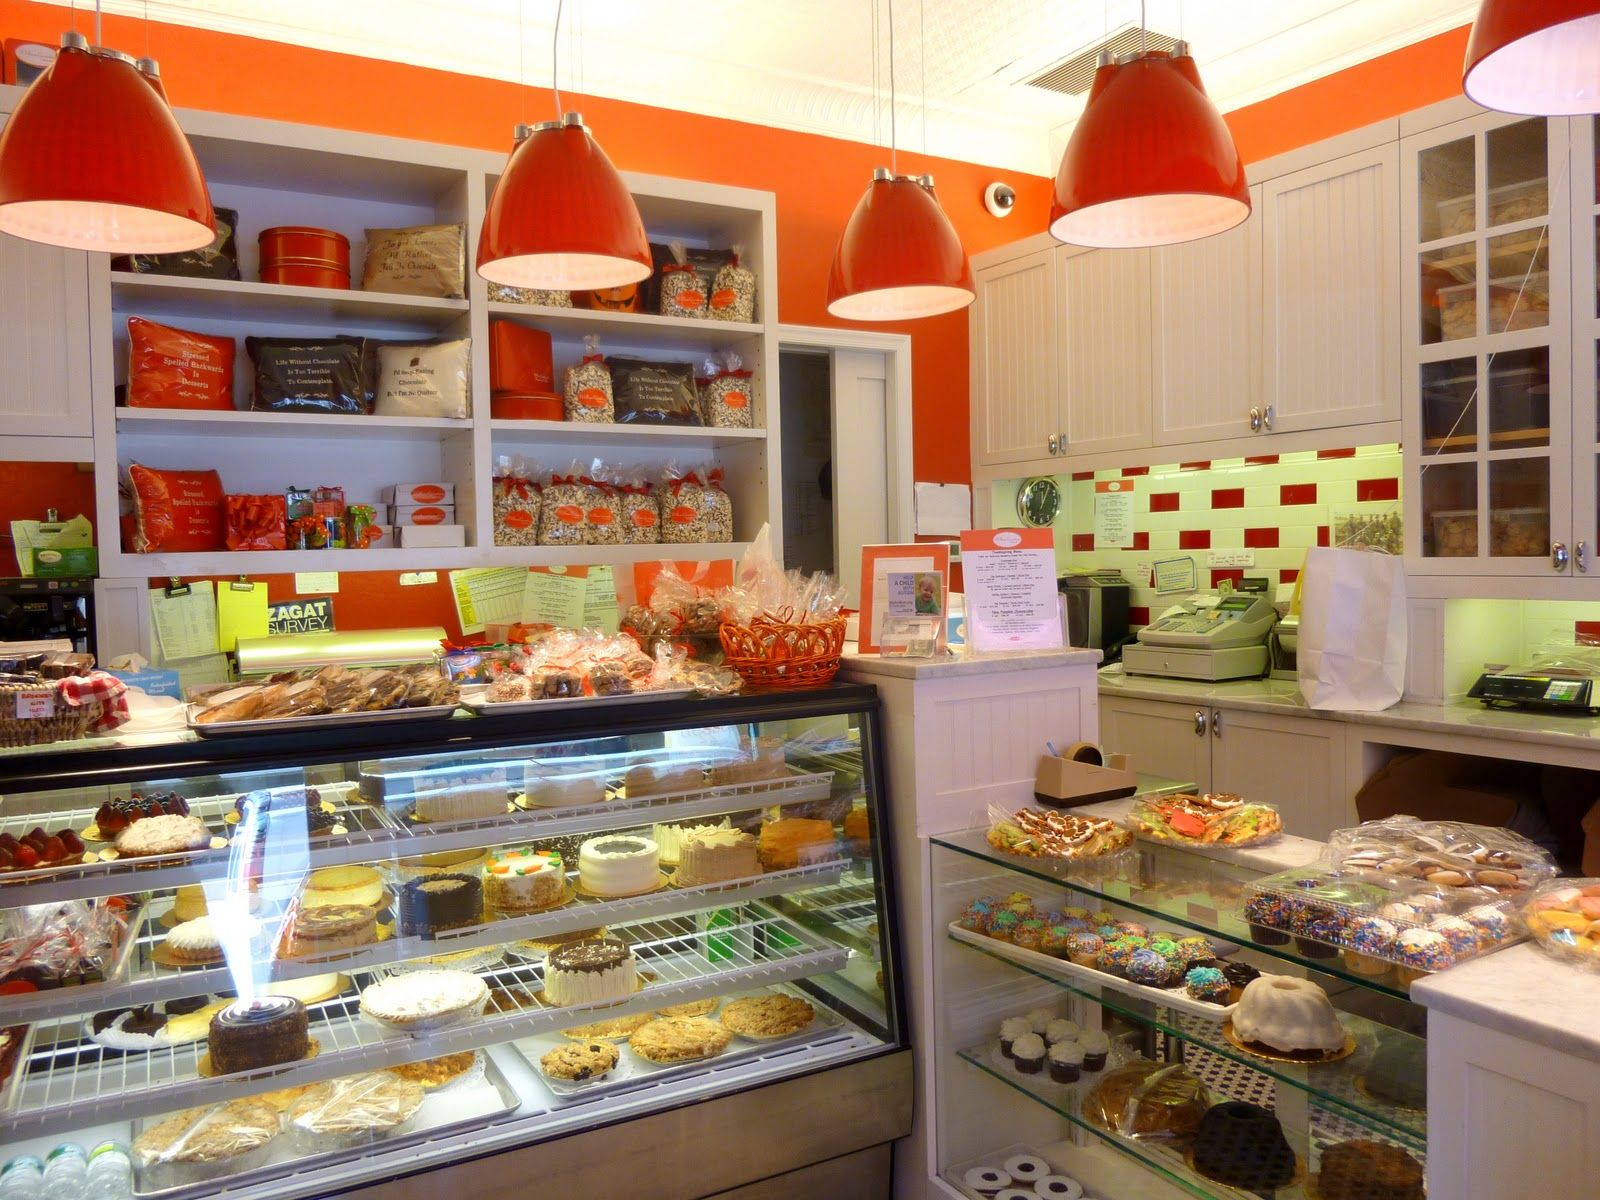 Bakery Interior Google Search Bakery Interior Bakery Shop Interior Bakery Design Interior